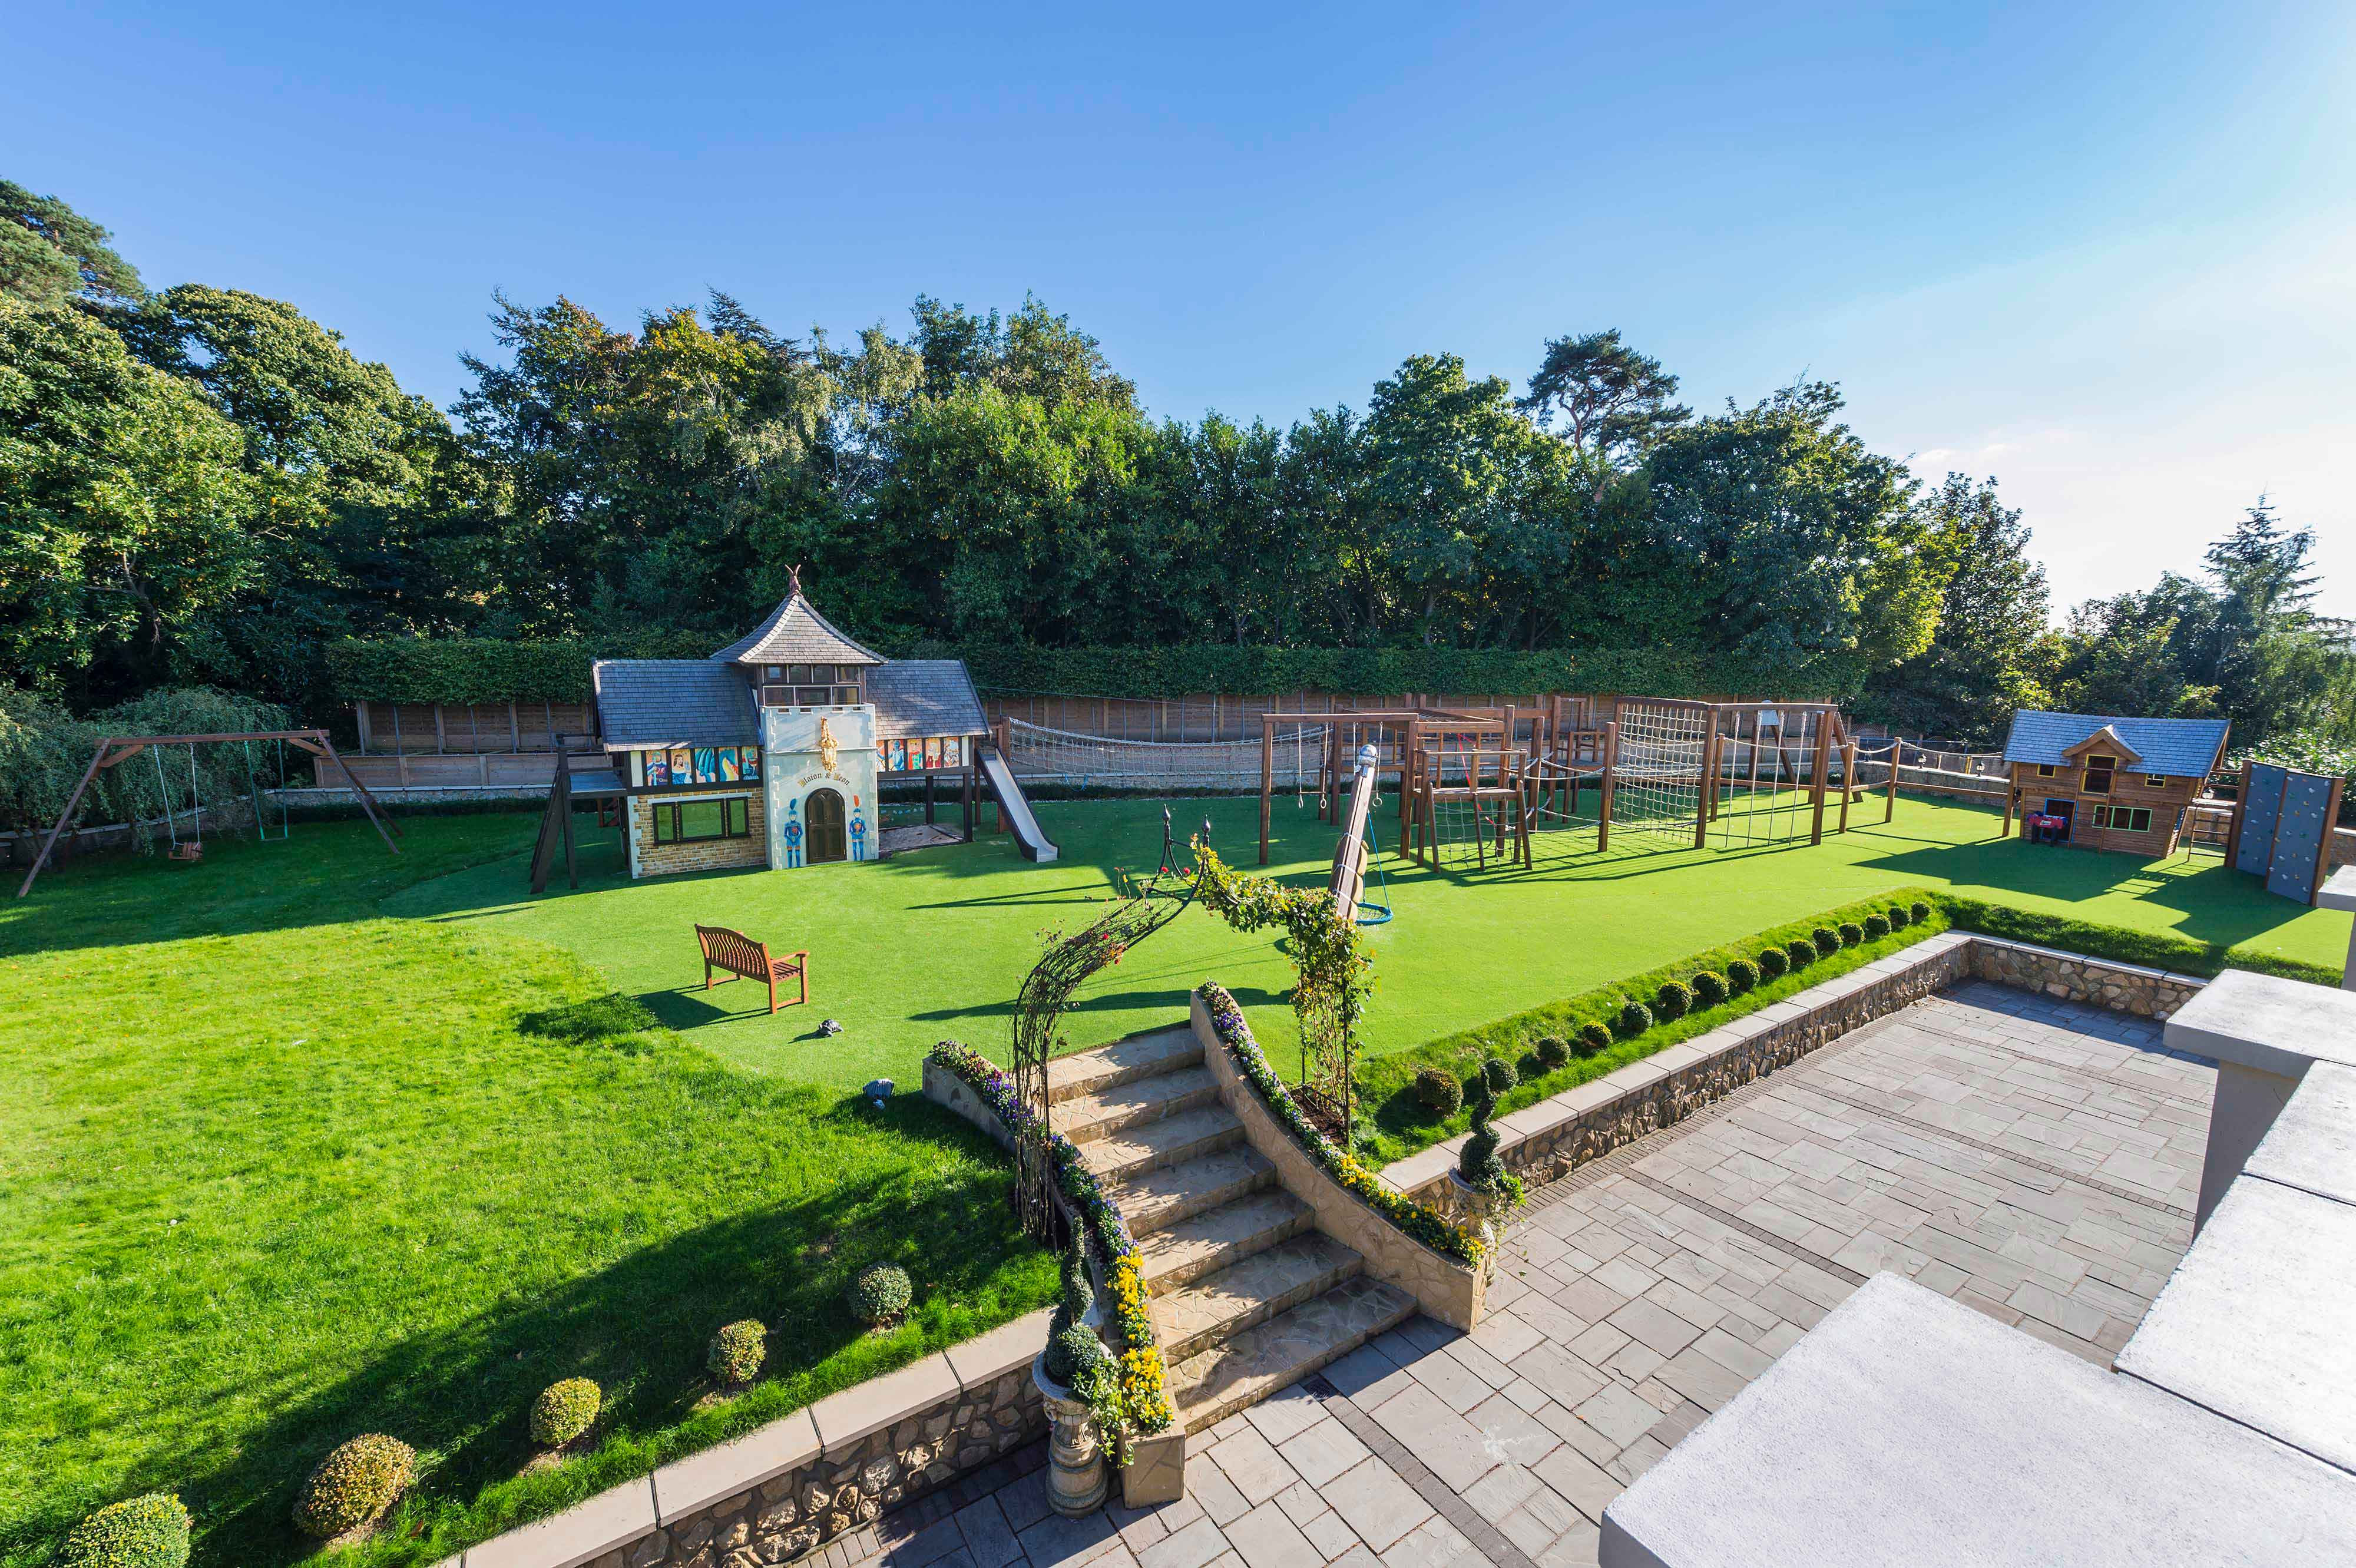 This country estate's child-friendly amenities include a £150,000 playhouse and adventure playground with a slide, zip-wire, climbing wall, and trampoline area; indoor and outdoor pools; and lawns for sports and games.